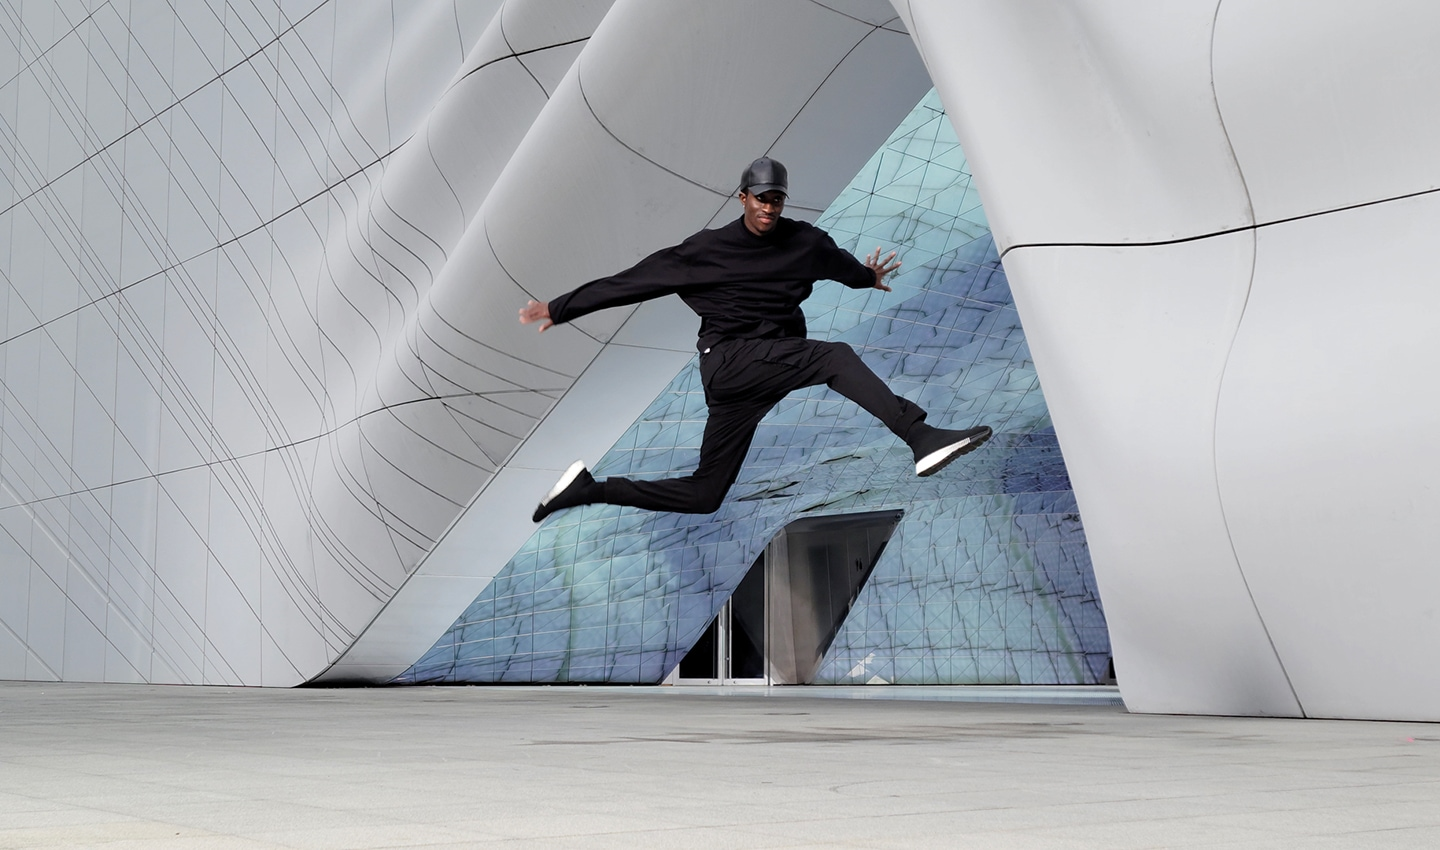 Scene of a man dancing in front of an architectural structure, shot with 8K on Galaxy S21 Ultra 5G. A still image is taken from the video using 8K Video Snap. The image shows how crisp a frame from 8K video looks as a photo.